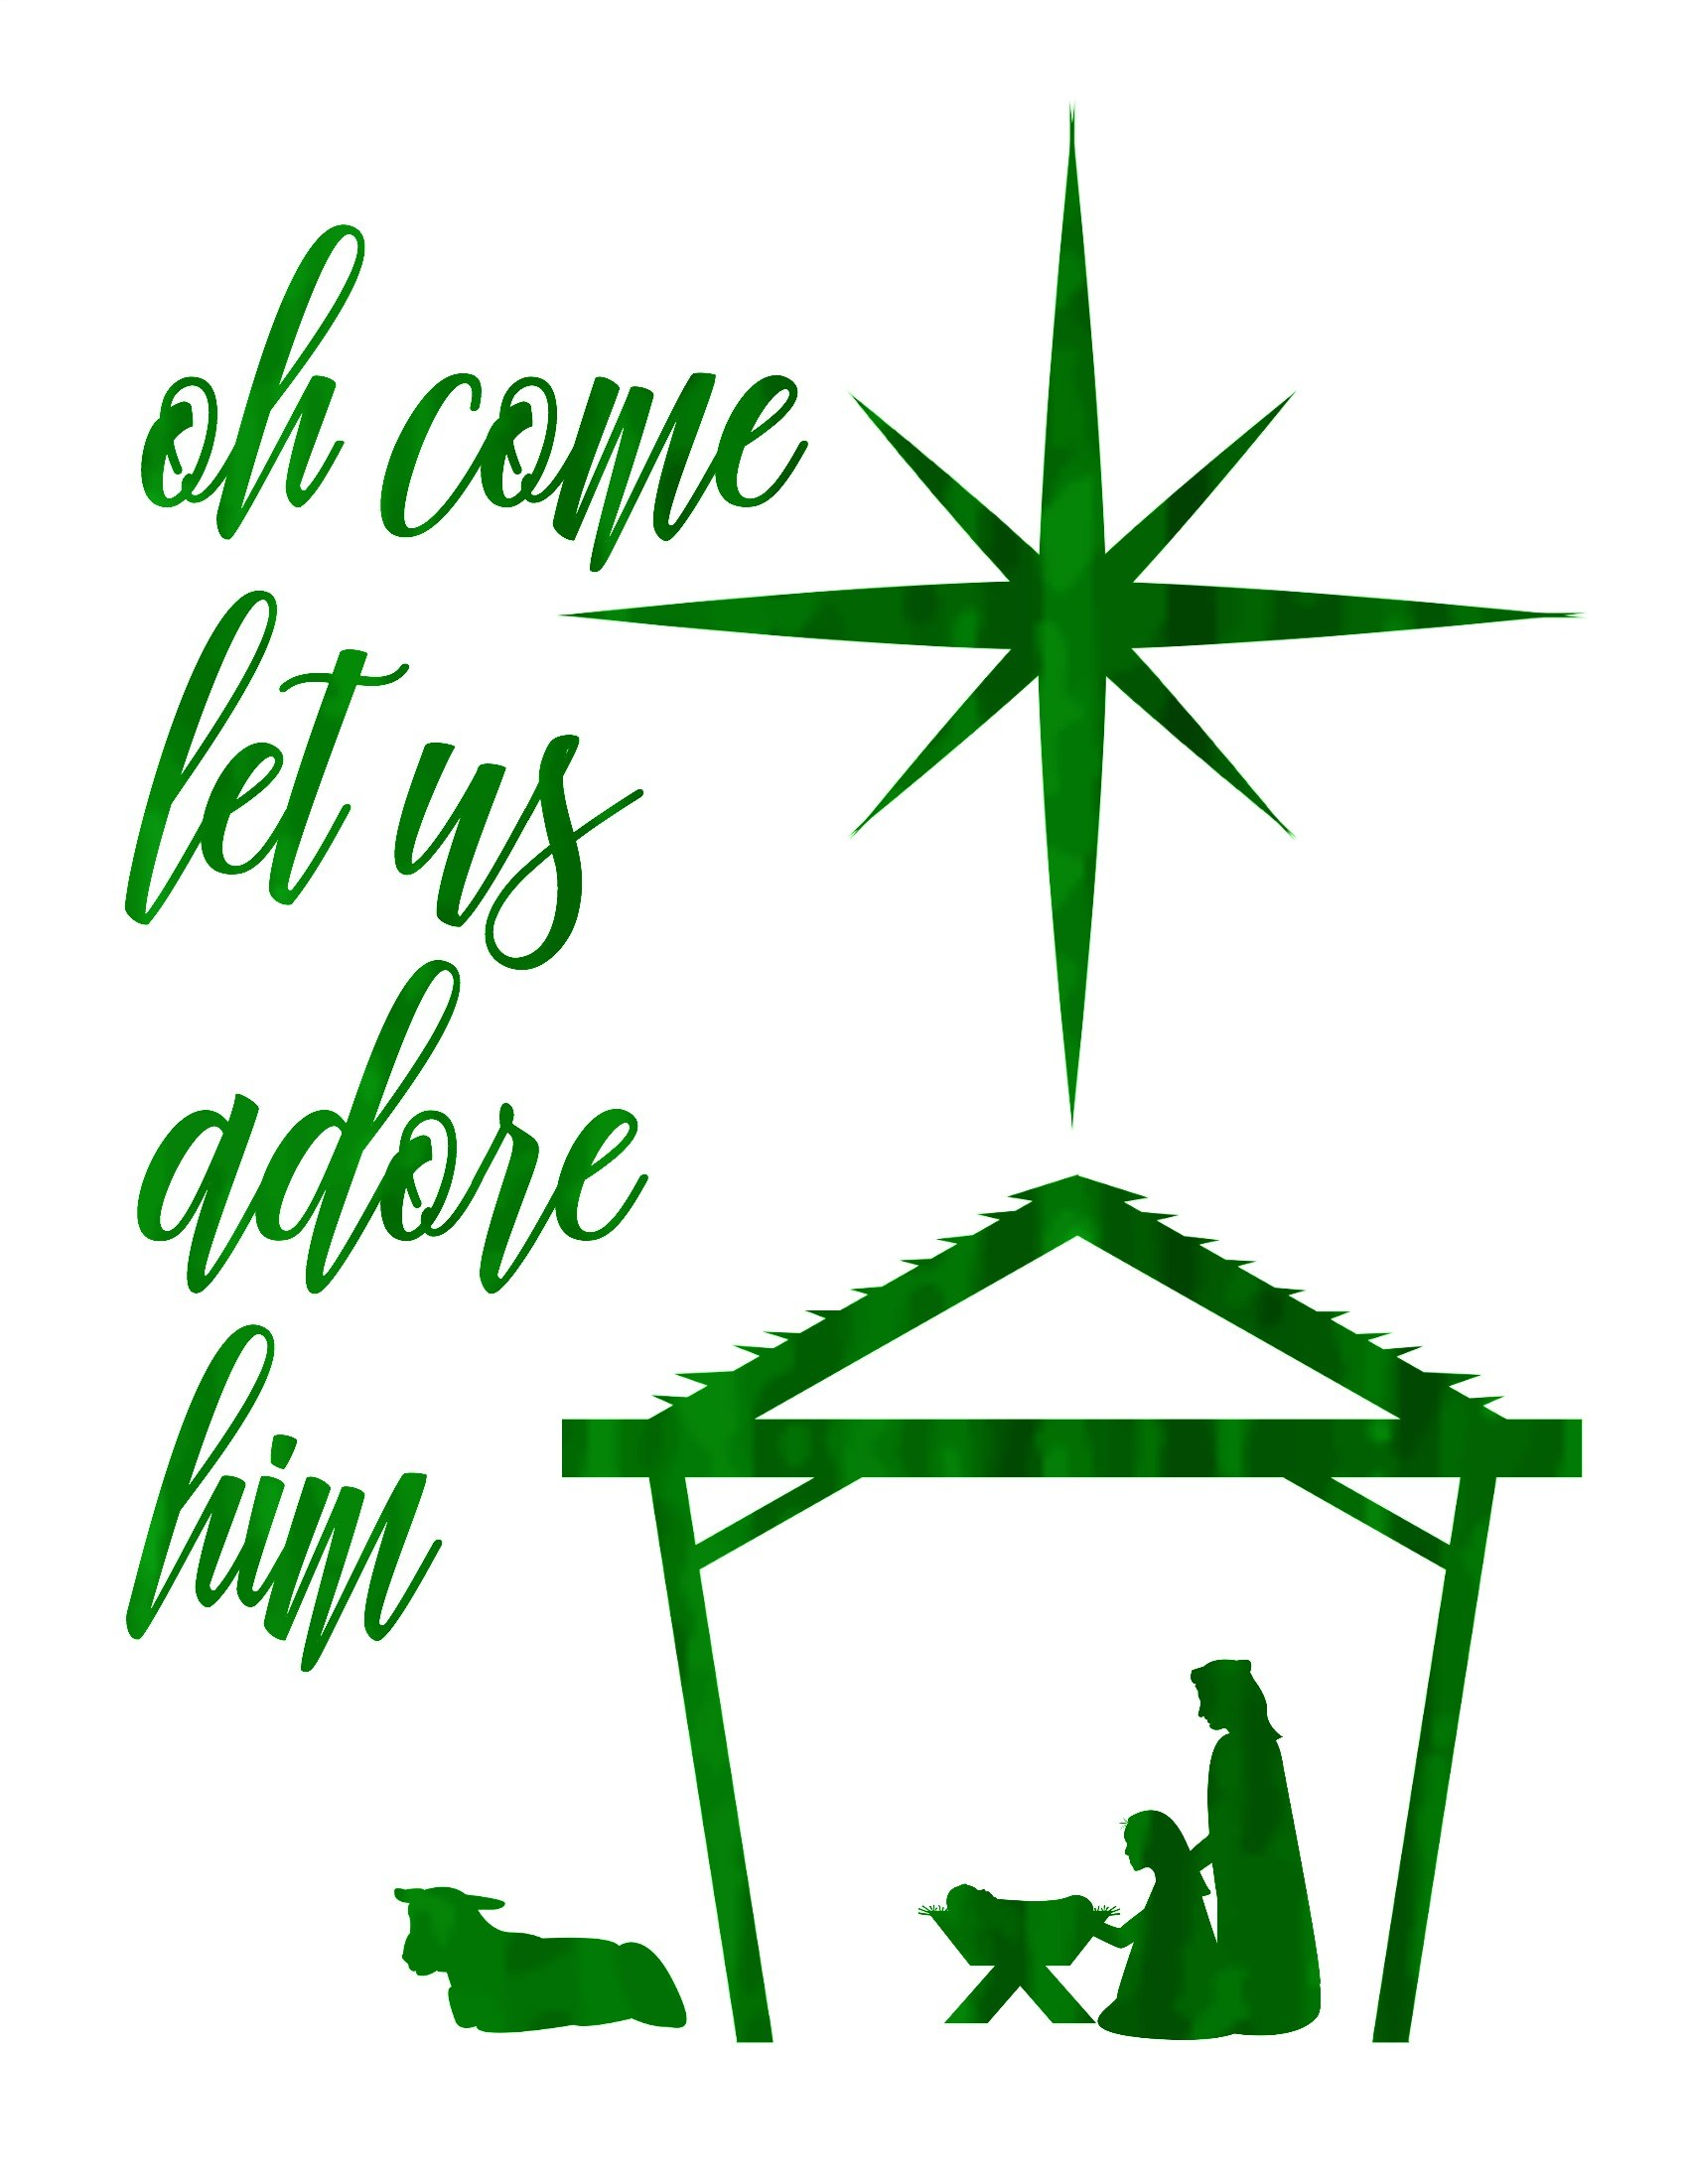 O come let us adore him clipart 6 » Clipart Portal.